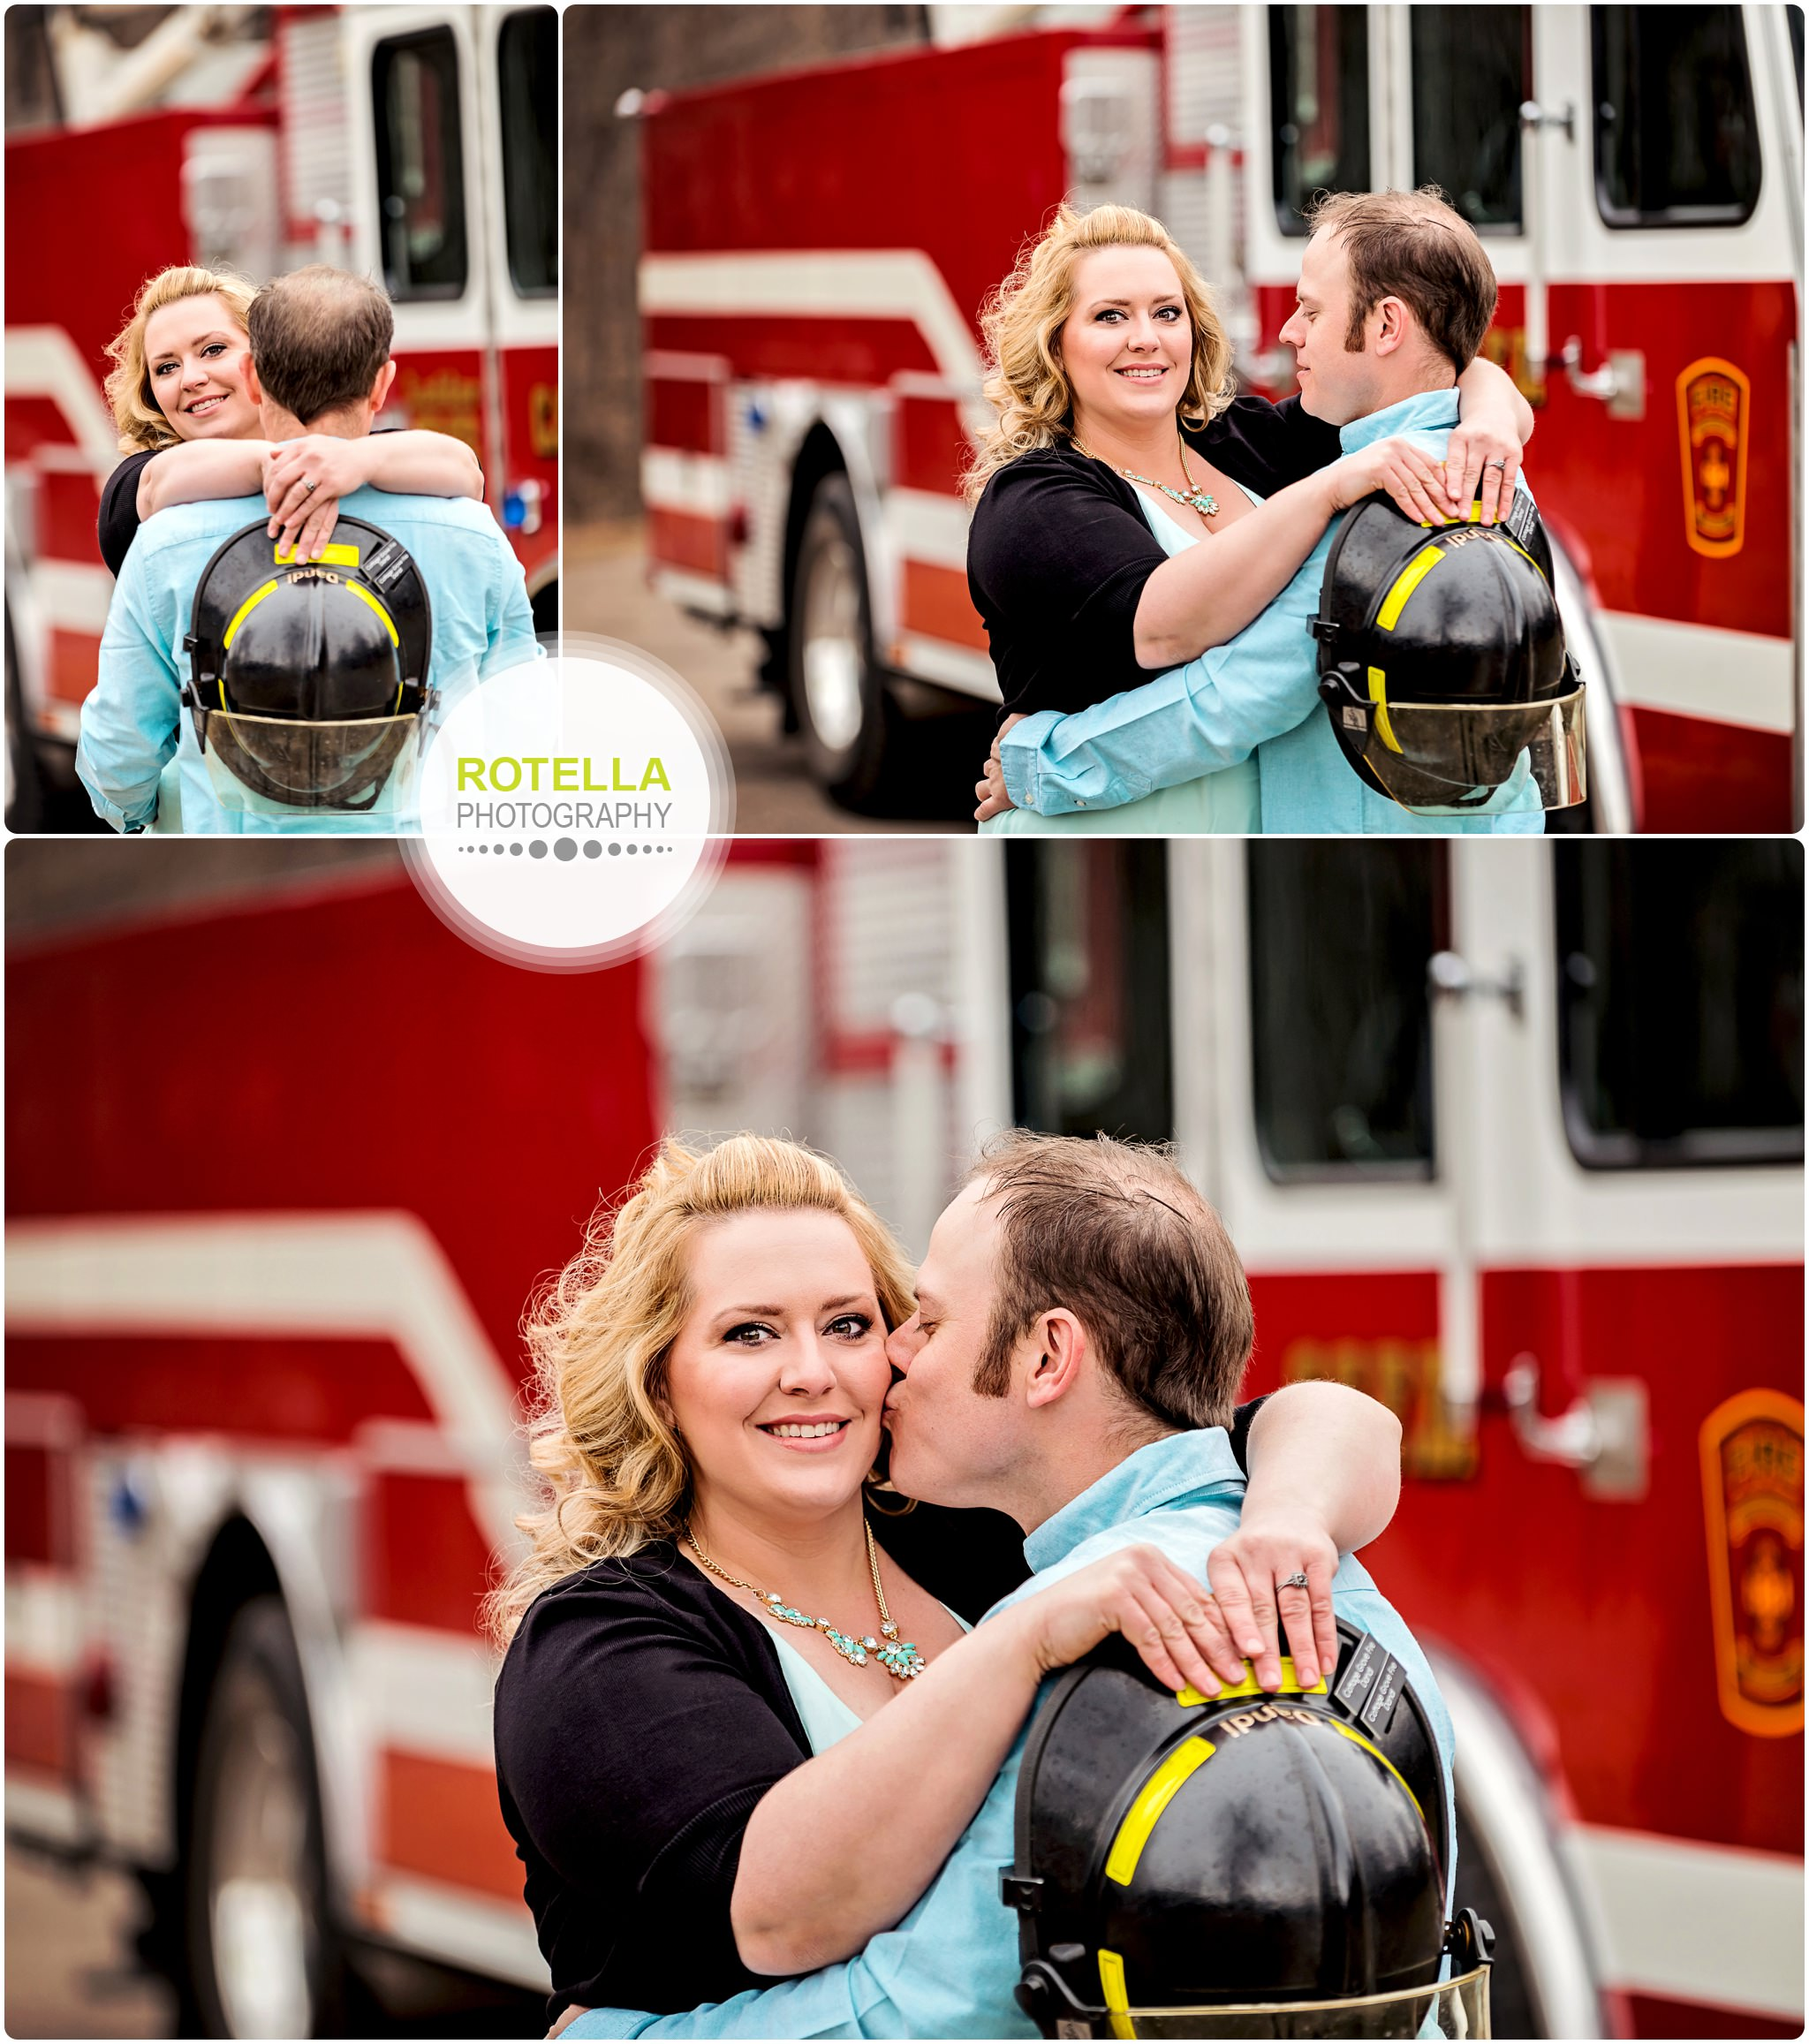 A-M-Minneapolis-Engagement-Photography-Rotella-Photography-2015_0009